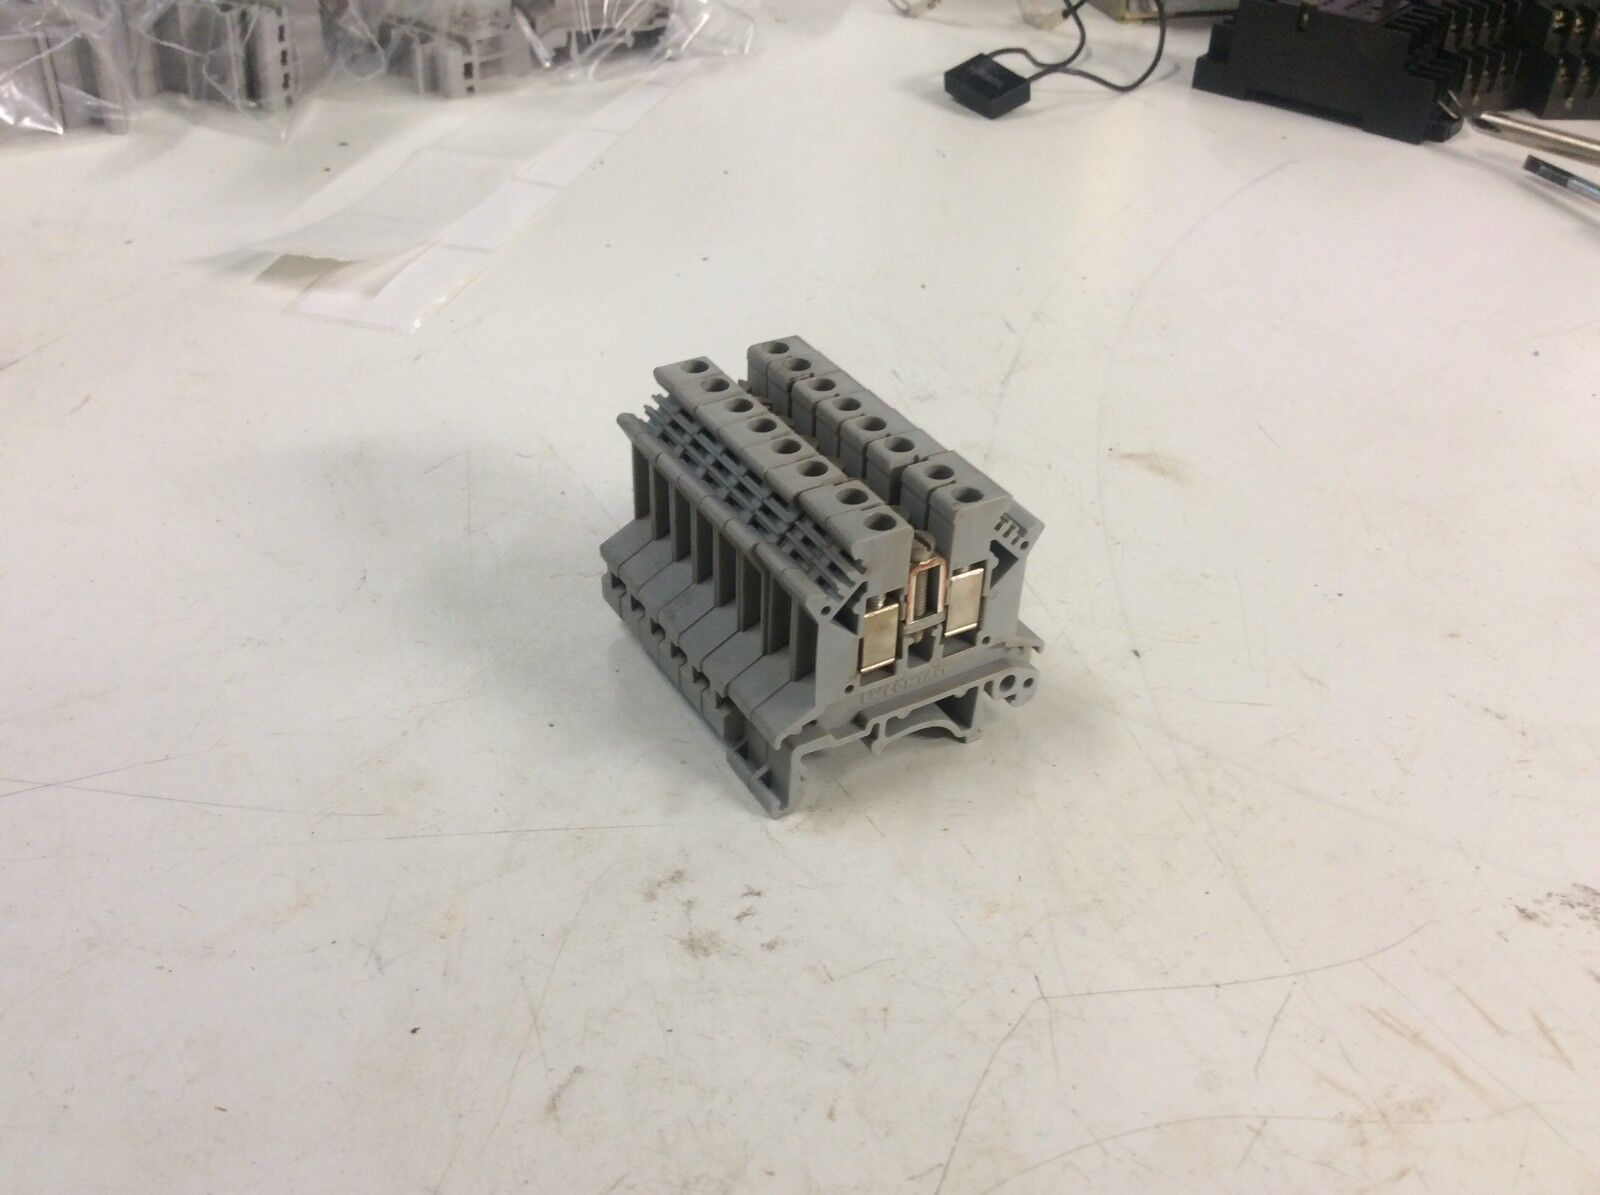 Lot of 8 - Phoenix Contact Typ UK2,5B Terminal Blocks, Used, Warranty